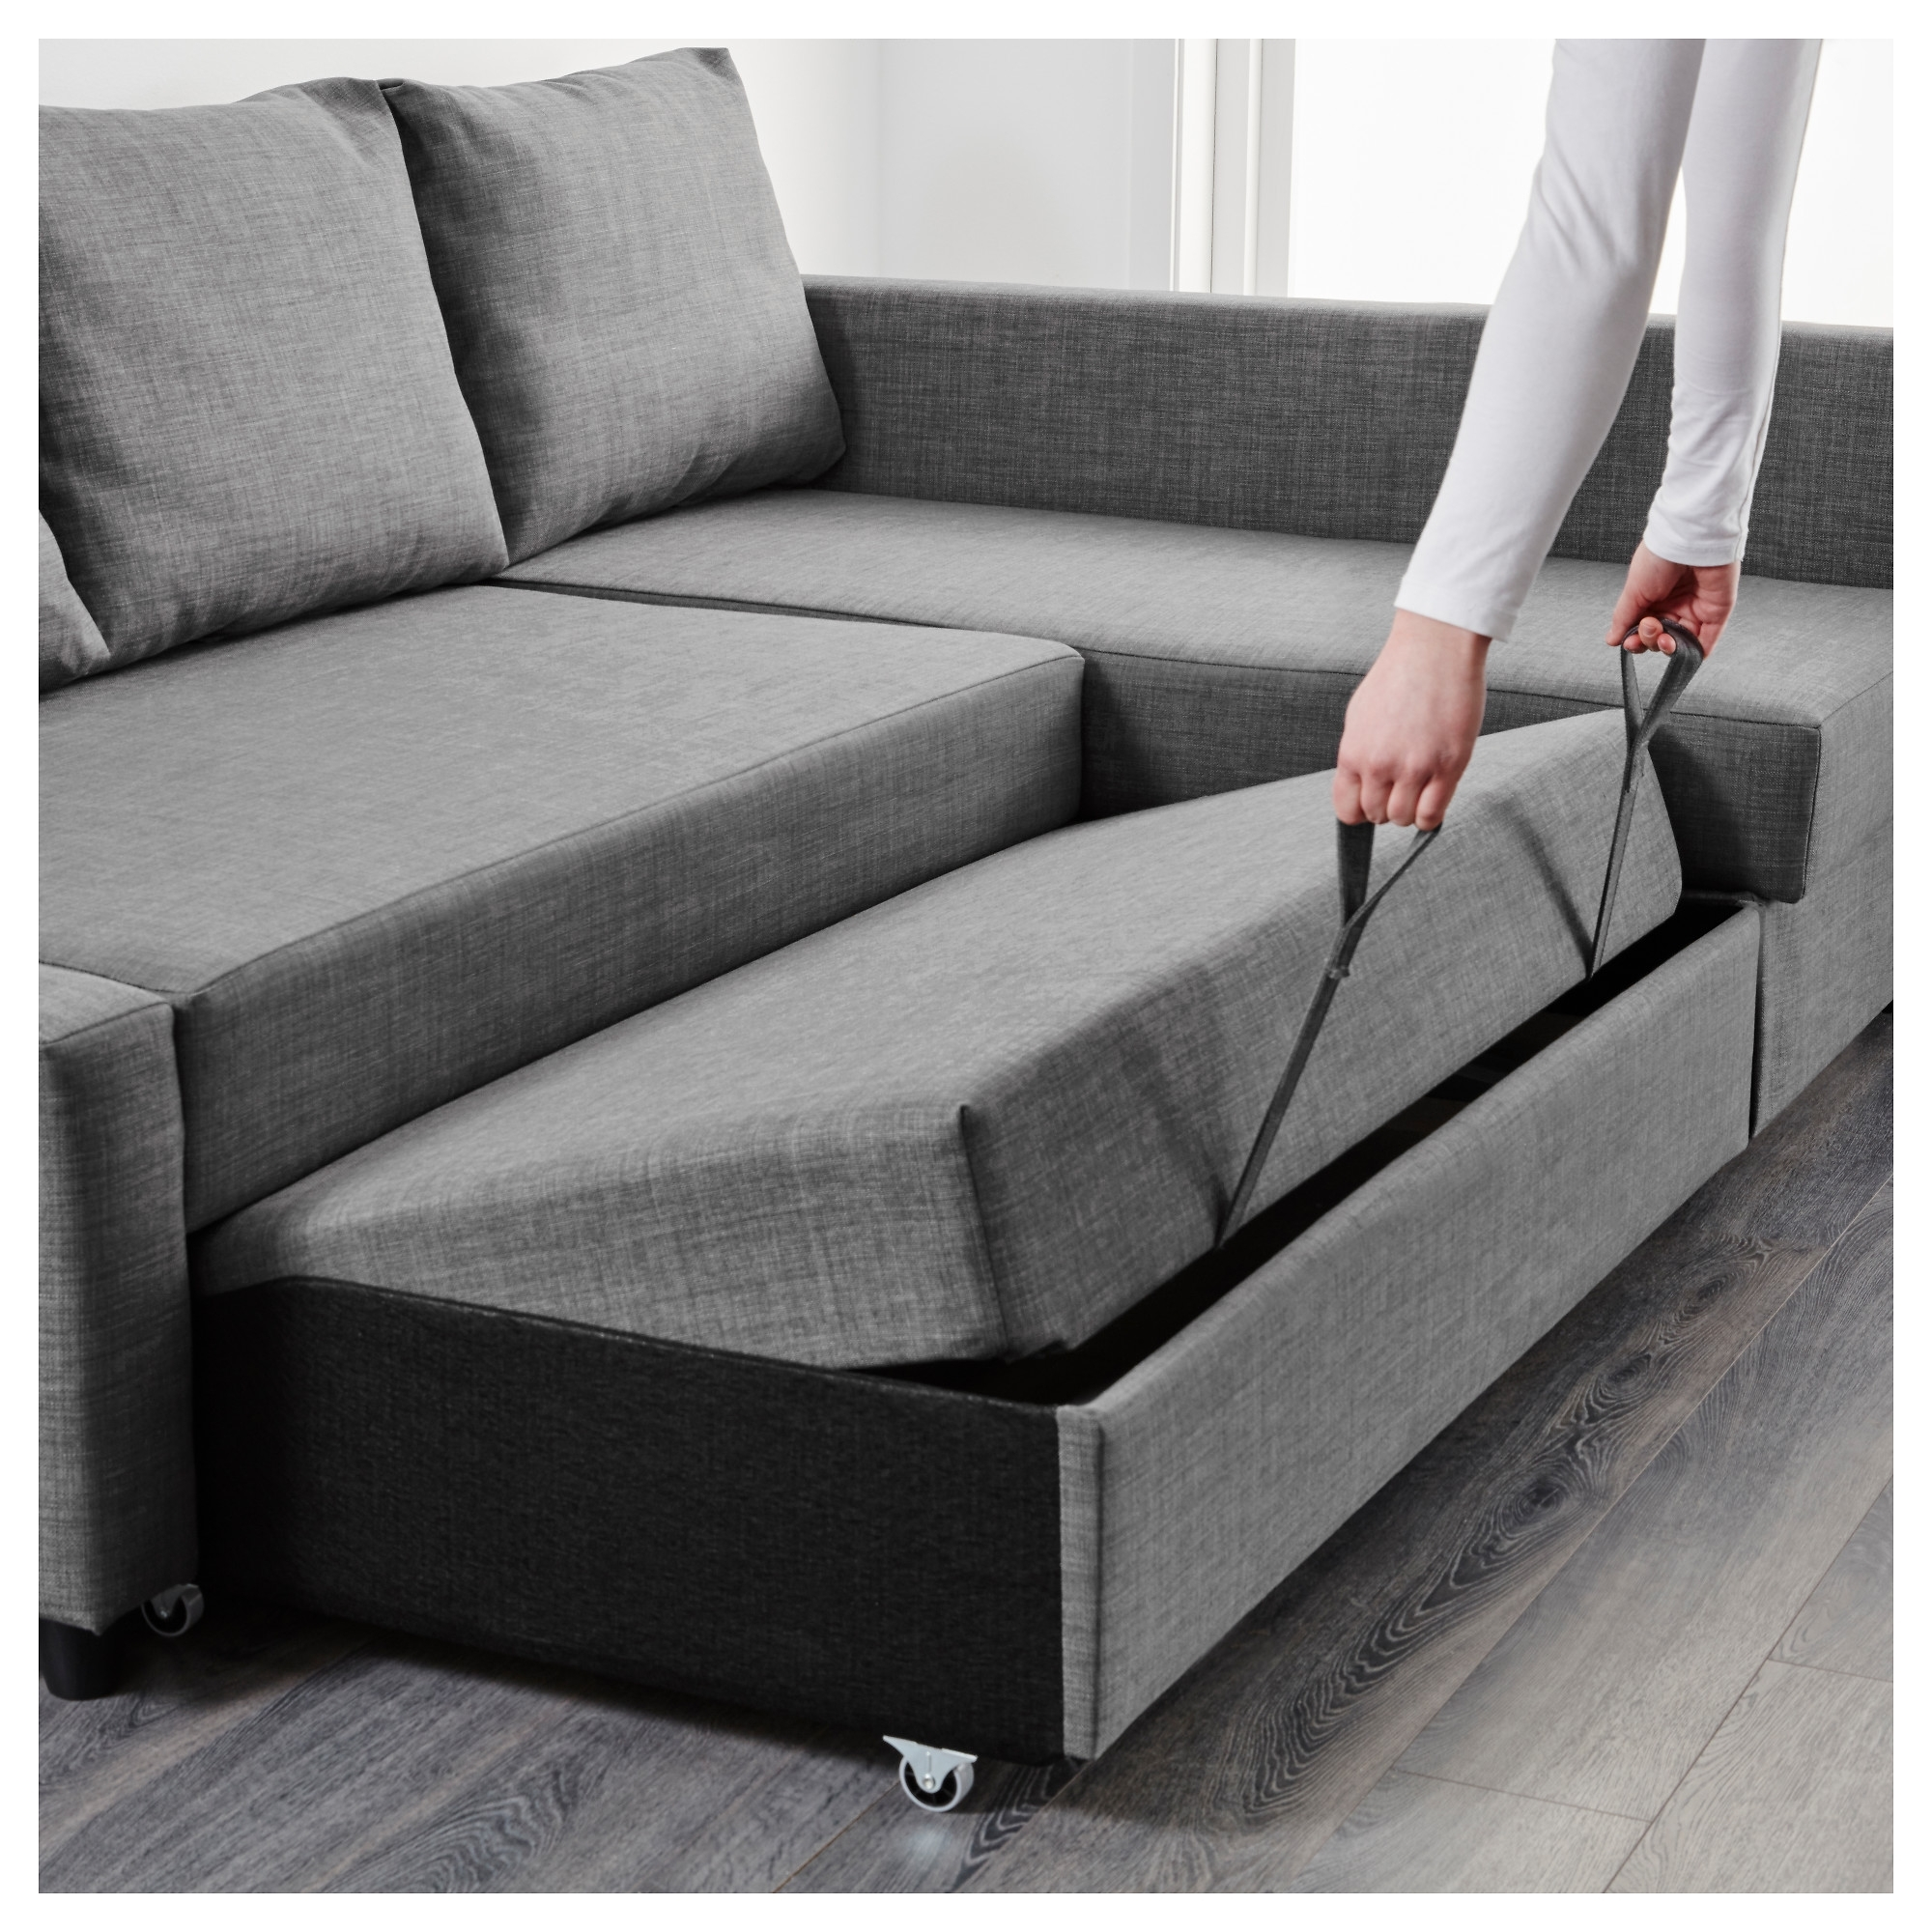 Favorite Friheten Corner Sofa Bed With Storage Skiftebo Dark Grey – Ikea For Chaise Lounge Beds (View 5 of 15)